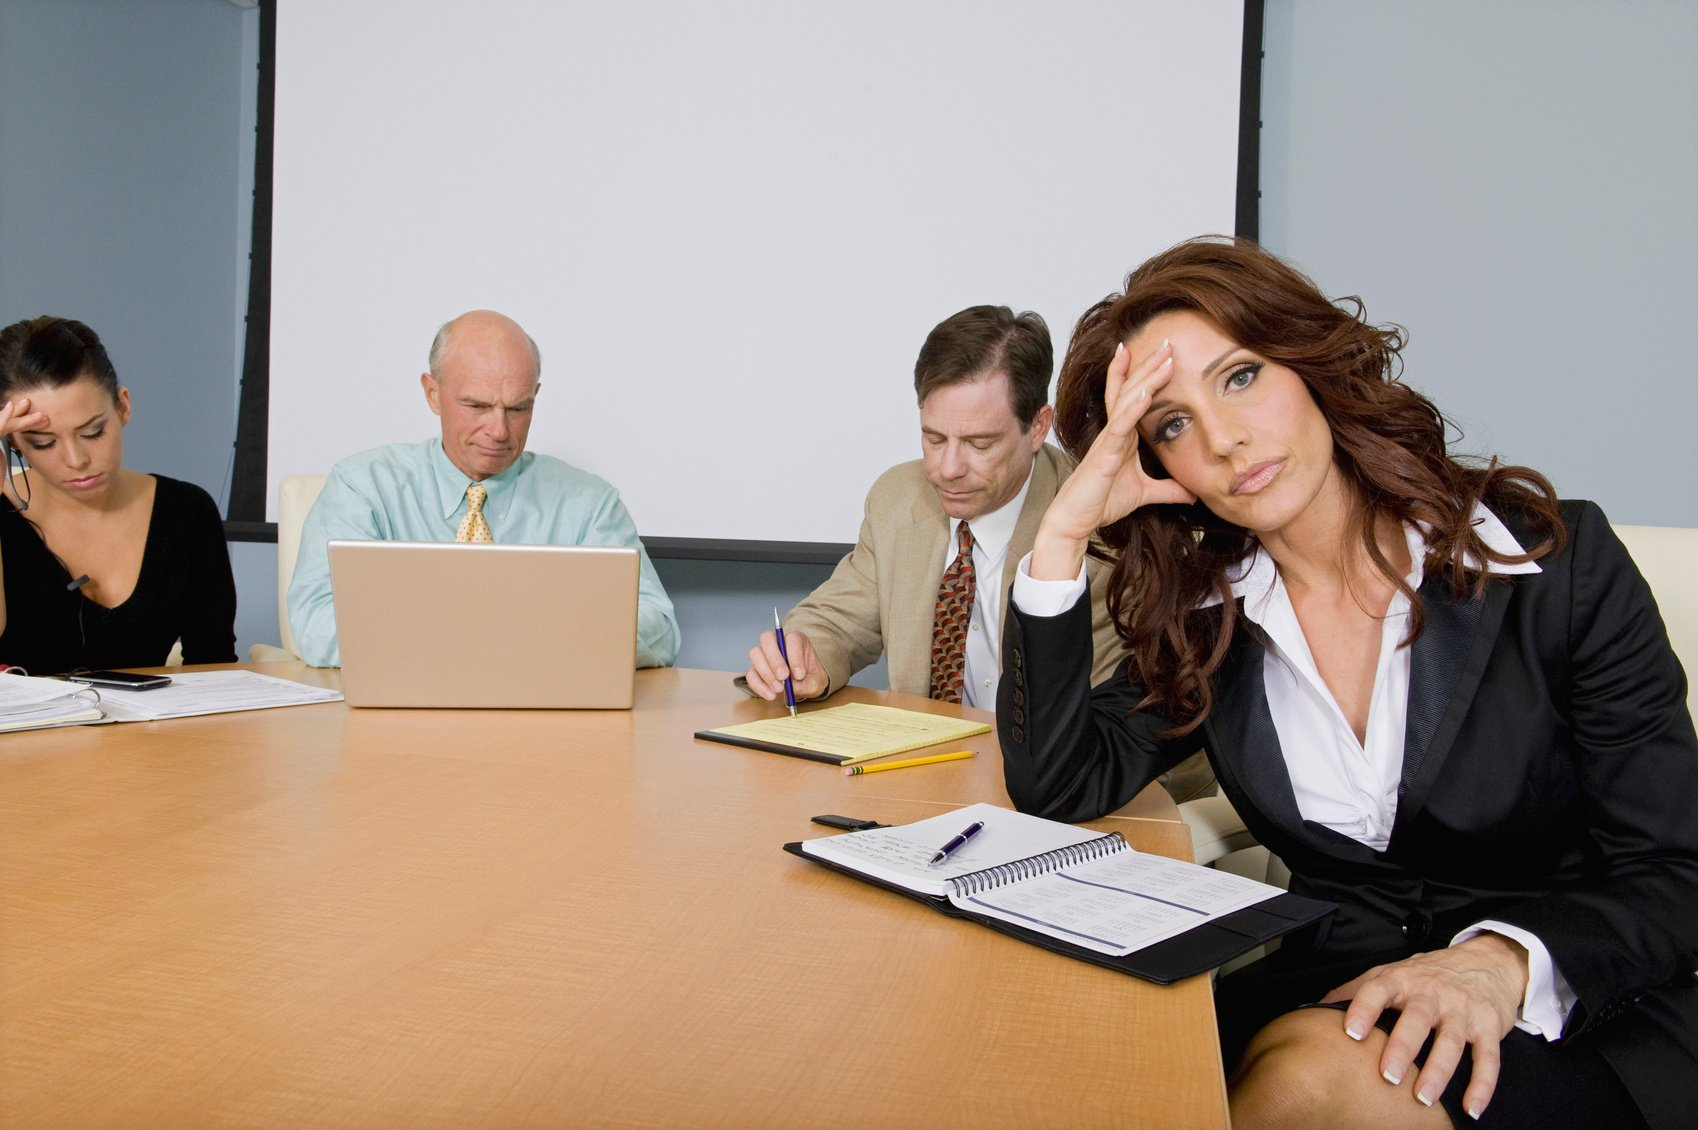 Woman bored in meeting